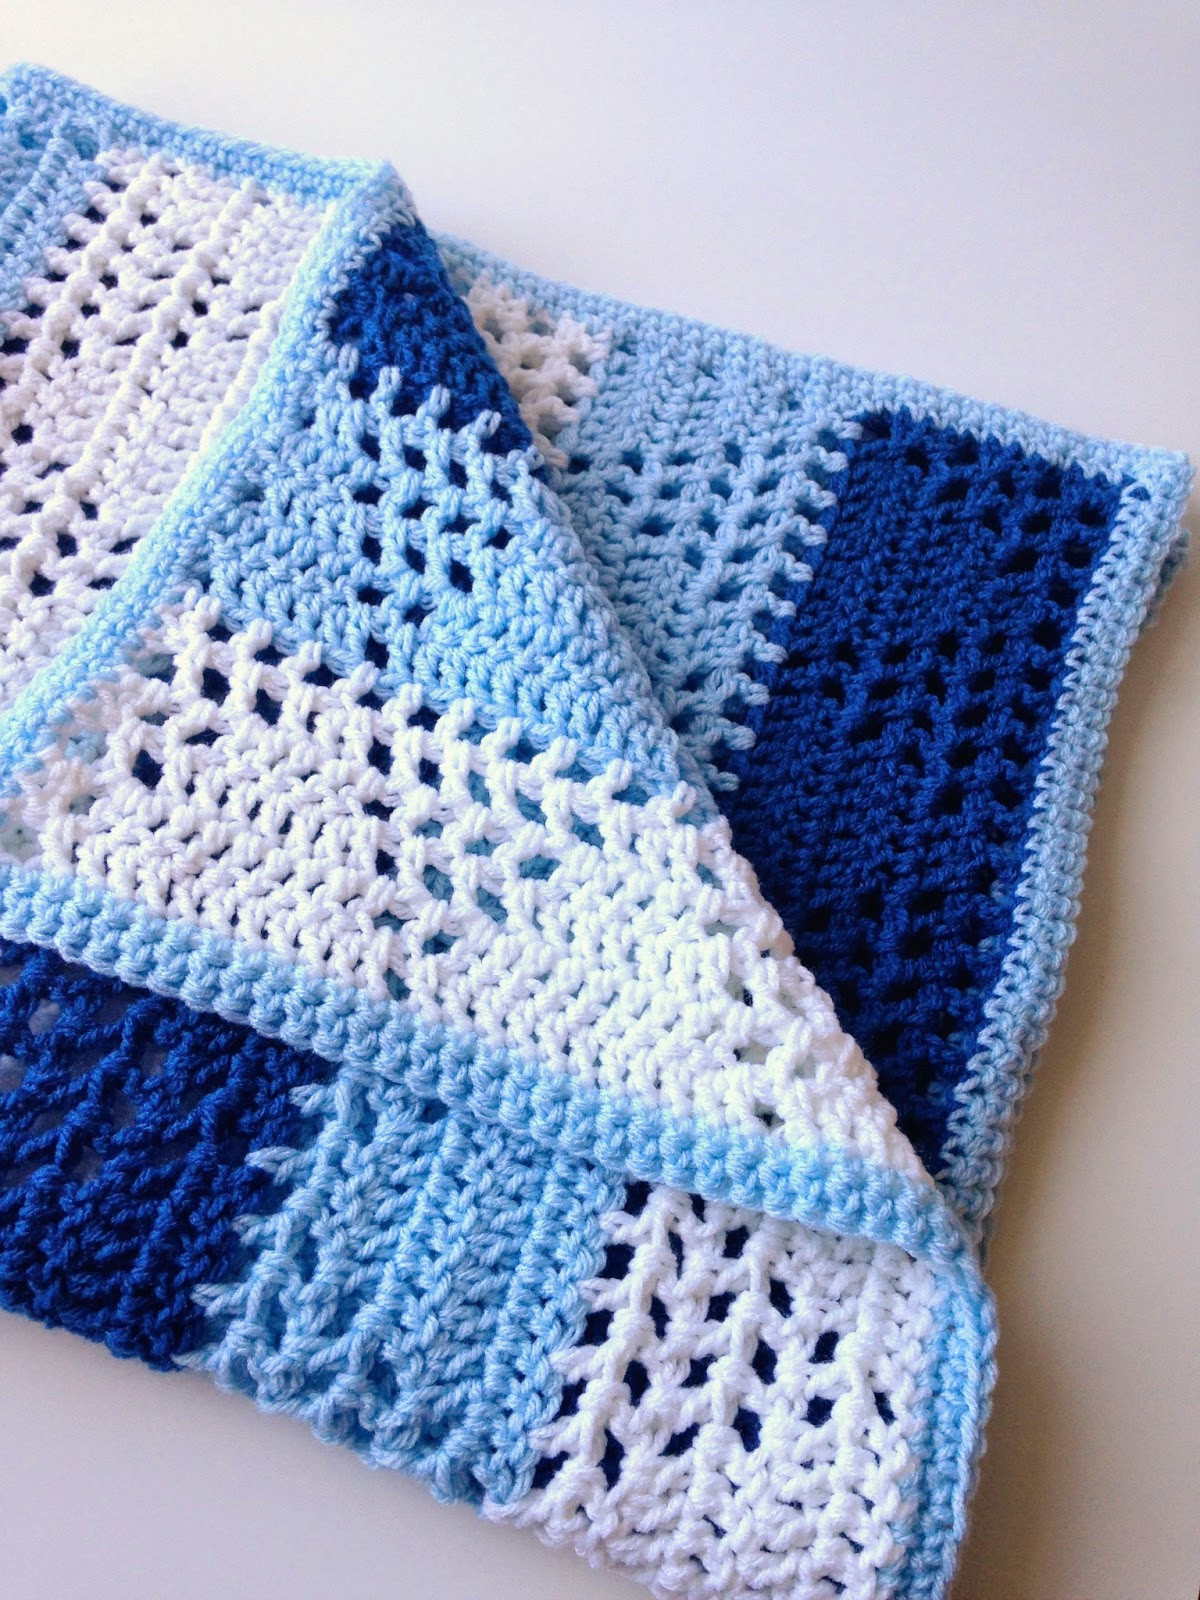 Baby Boy Crochet Blanket Patterns Awesome 5 Little Monsters Triangles & Stripes Baby Blanket Of Baby Boy Crochet Blanket Patterns Lovely Navy and Teal for A Baby Boy